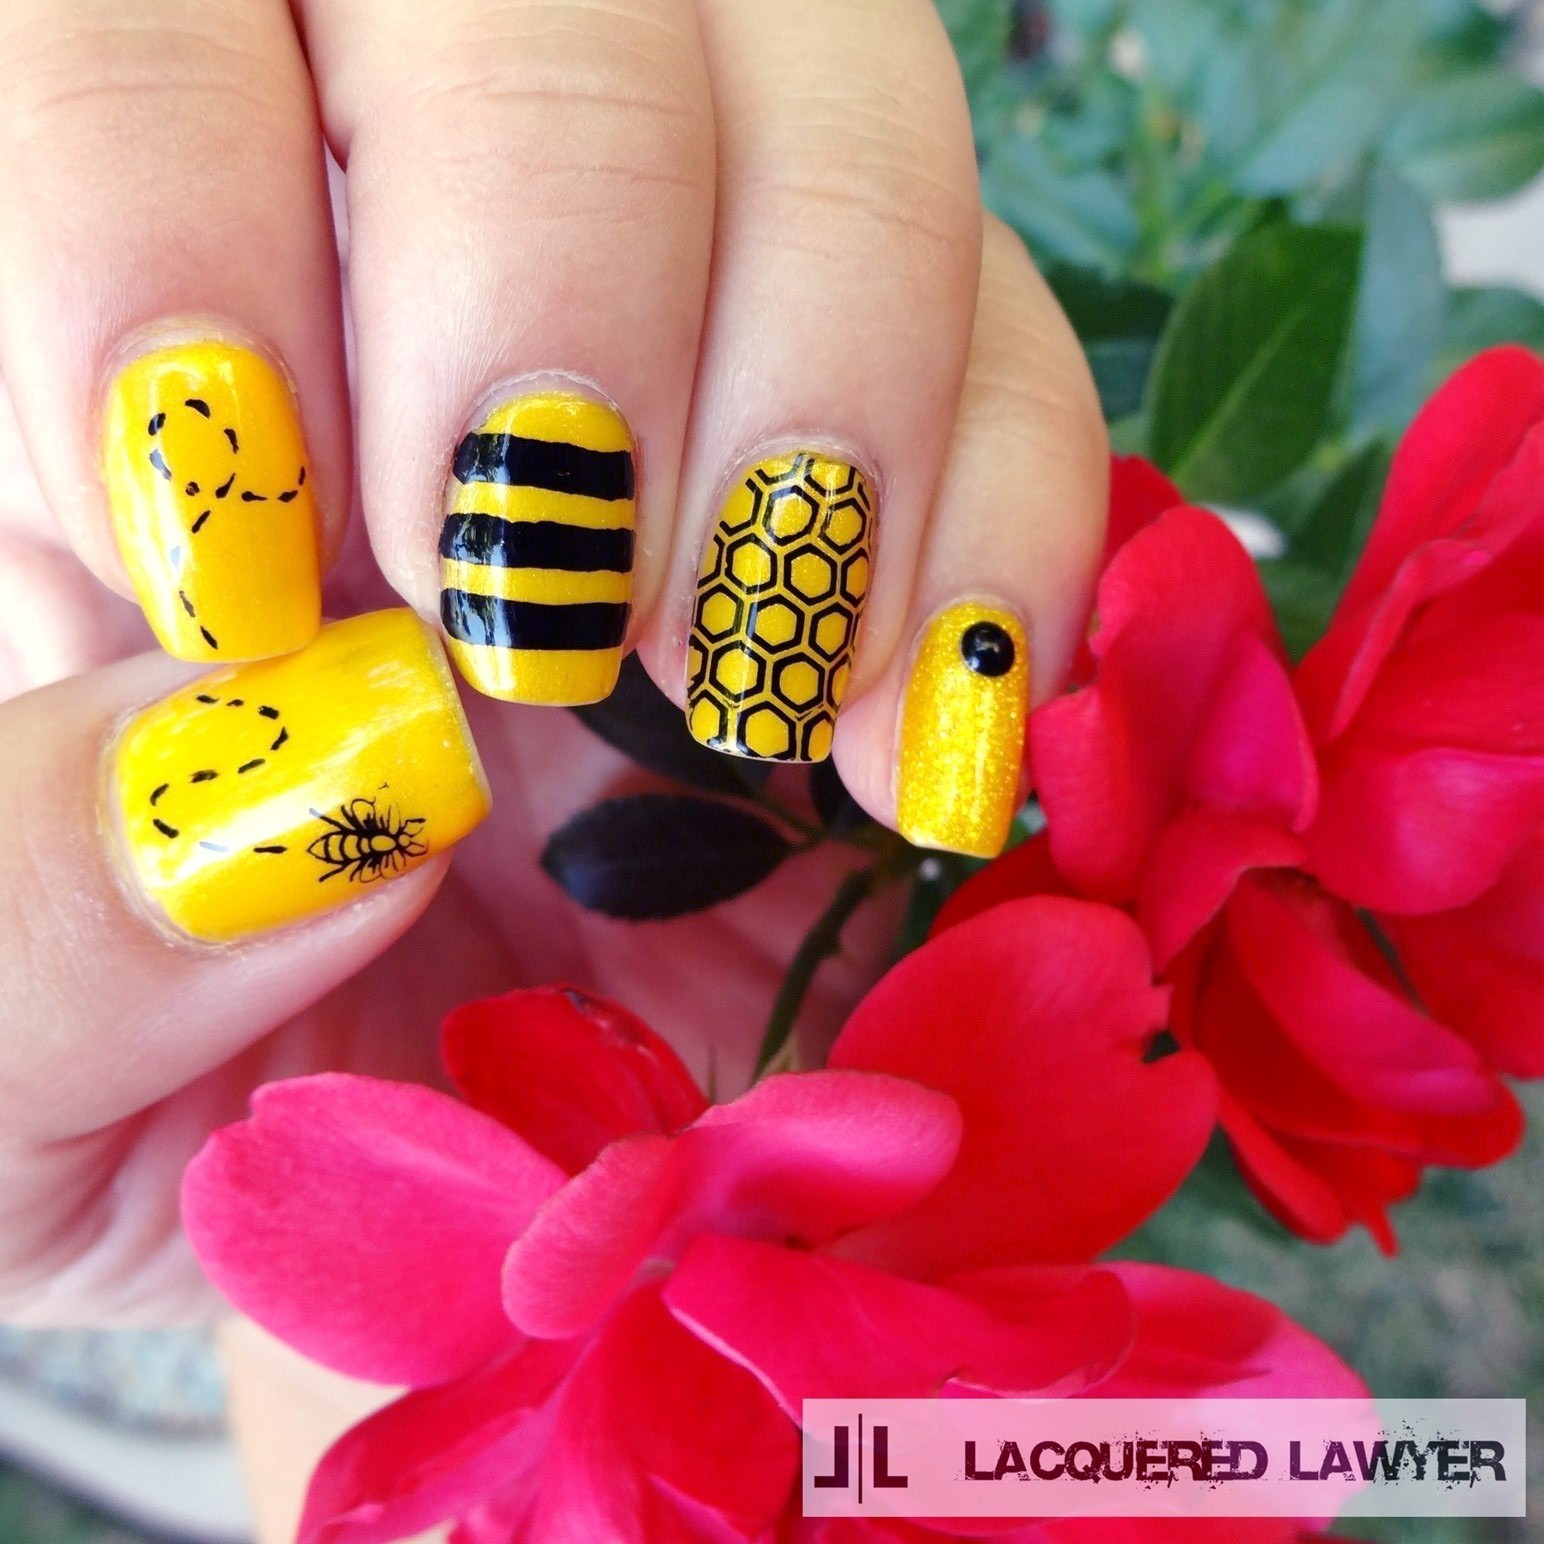 Lacquered lawyer nail art blog busy as a bee busy as a bee bumble bee nail art prinsesfo Image collections